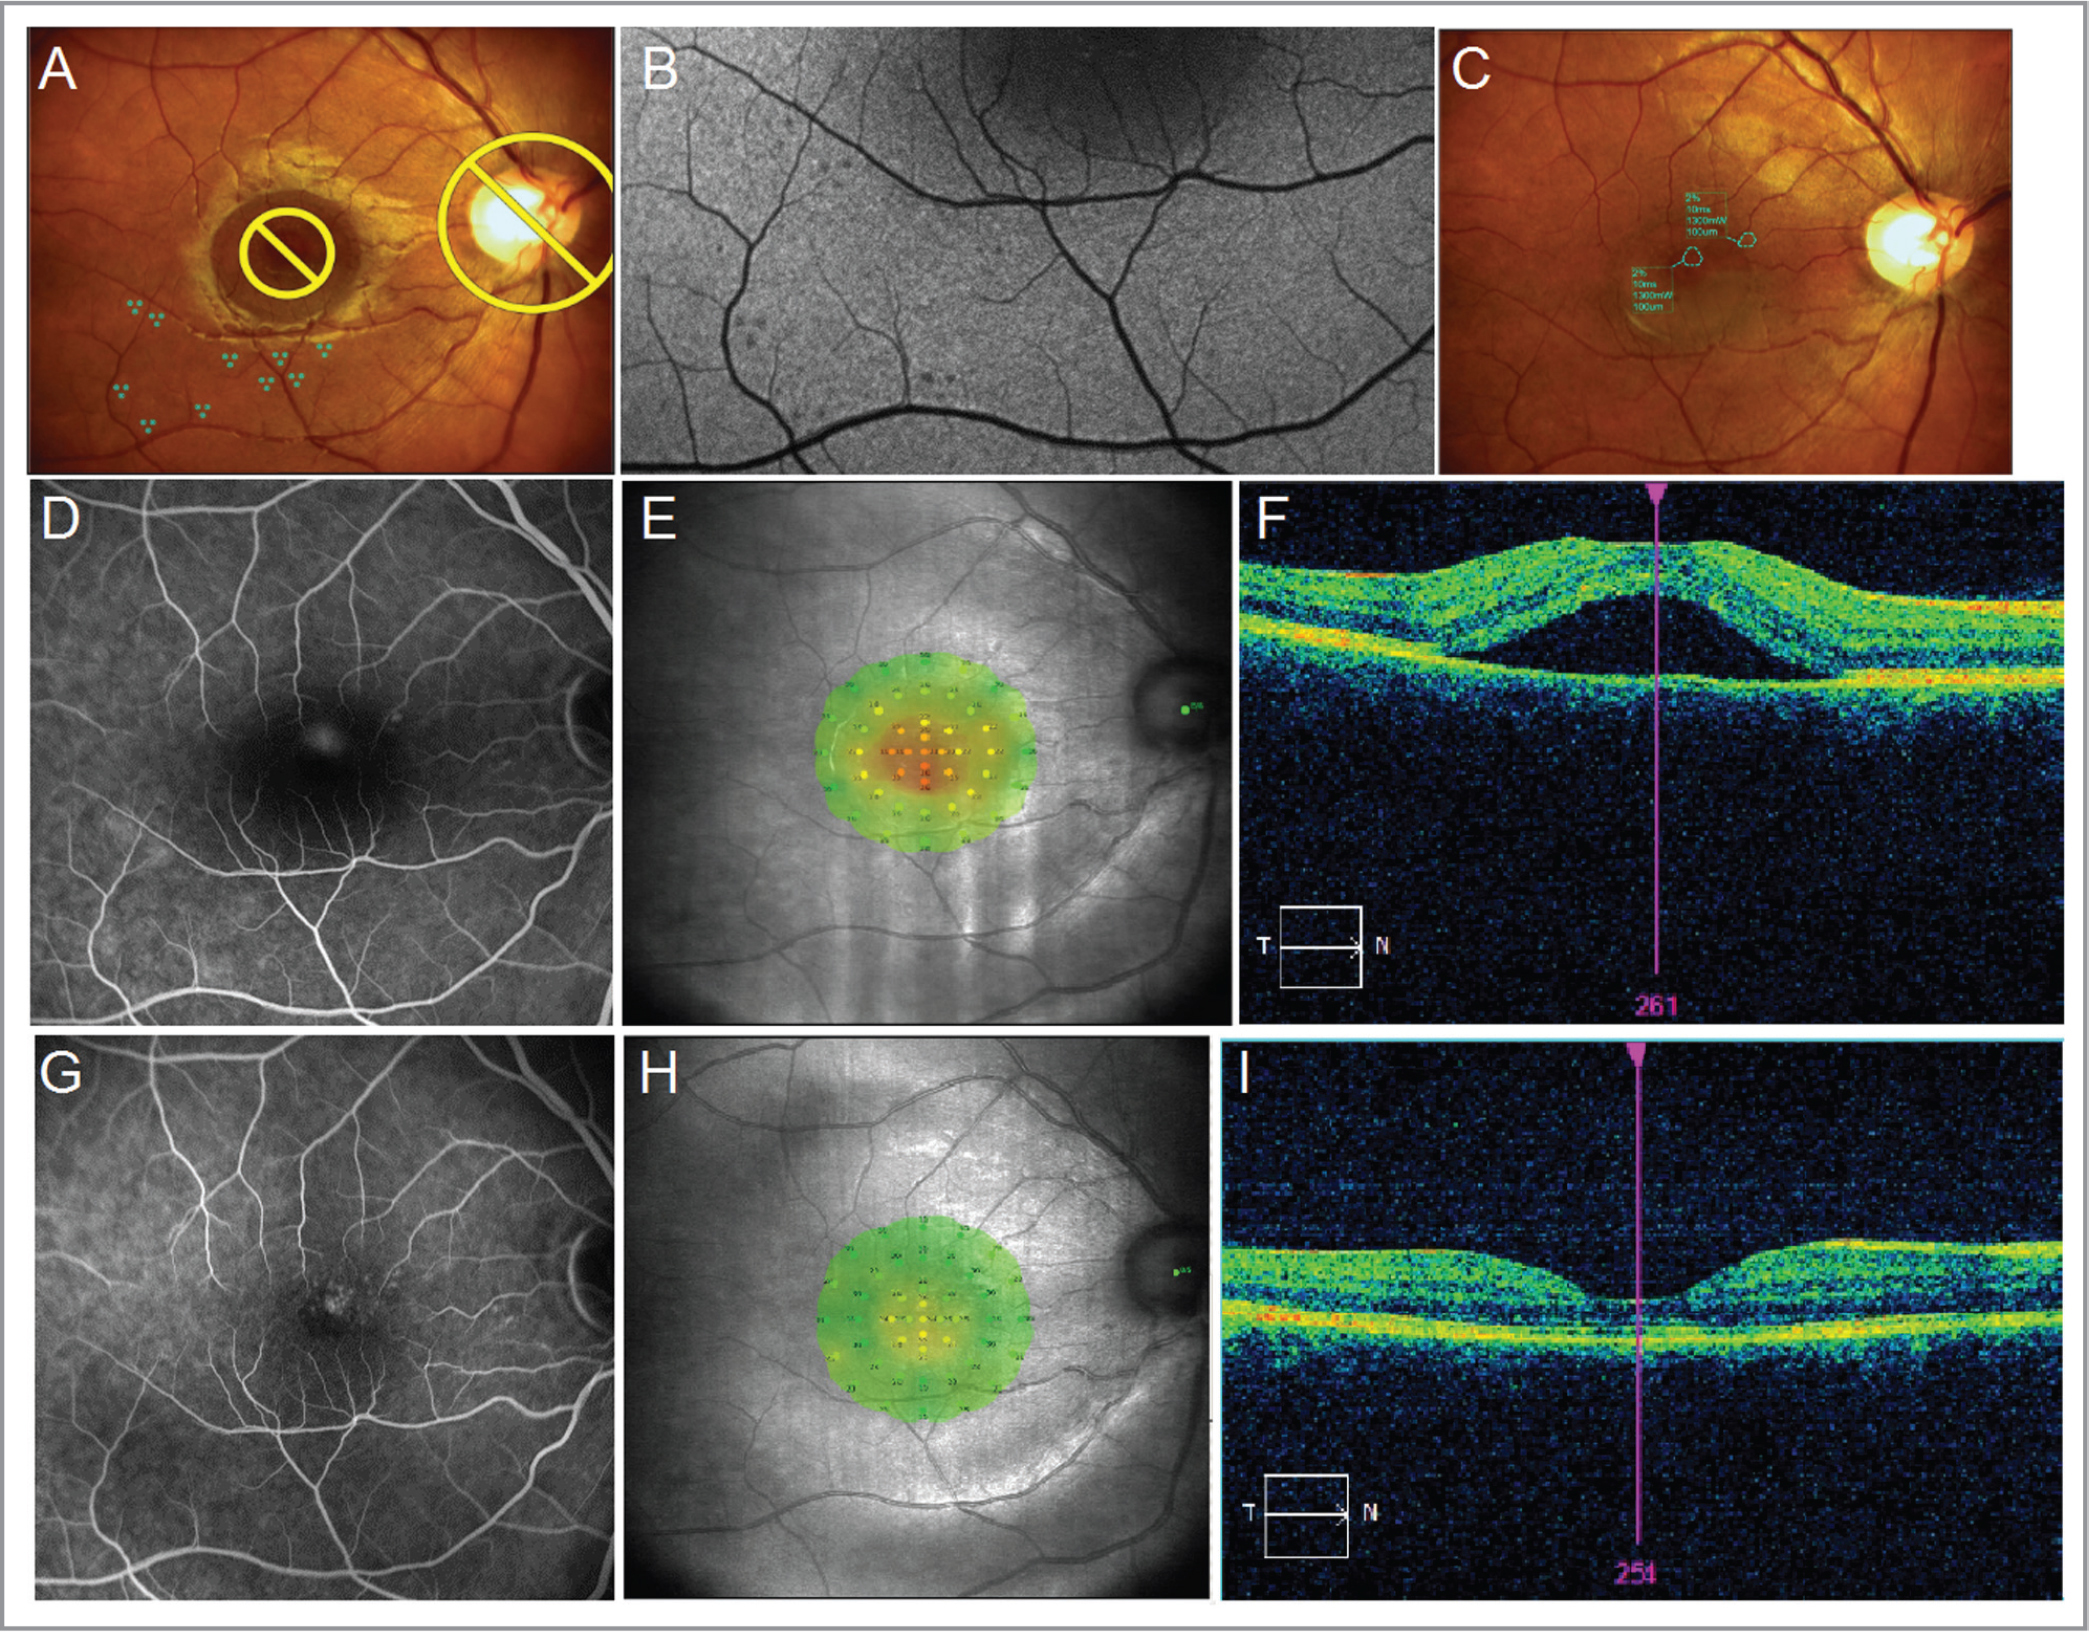 Clinical example. Line 1: Navilas plans. (A) Test plan for Navilas 577s. (B) Autofluorescence demonstrating titration effects. (C) Treatment protocol with the Navilas 577s. Laser applications are placed close to each other, completely covering the point of leakage and retinal pigment epithelium (RPE) defect with minimum power (1.3 W), whereby there are visible signs of RPE damage revealed in the autofluorescence. Line 2: Baseline. (D) Fluorescein angiography (FA). The leaking point in the foveal avascular zone is observed. (E) Computerized microperimetry. Retinal sensitivity: 24.2 dB. A decrease in central macular sensitivity can be observed. (F) Optical coherence tomography. Subretinal fluid (SRF) in the macula. Line 3: 3 months. (G) FA. There are no visible changes in areas of laser treatment and testing. (H) Microperimetry. Retinal sensitivity: 27.9 dB. (I) Optical coherence tomography. SRF is completely resorbed.